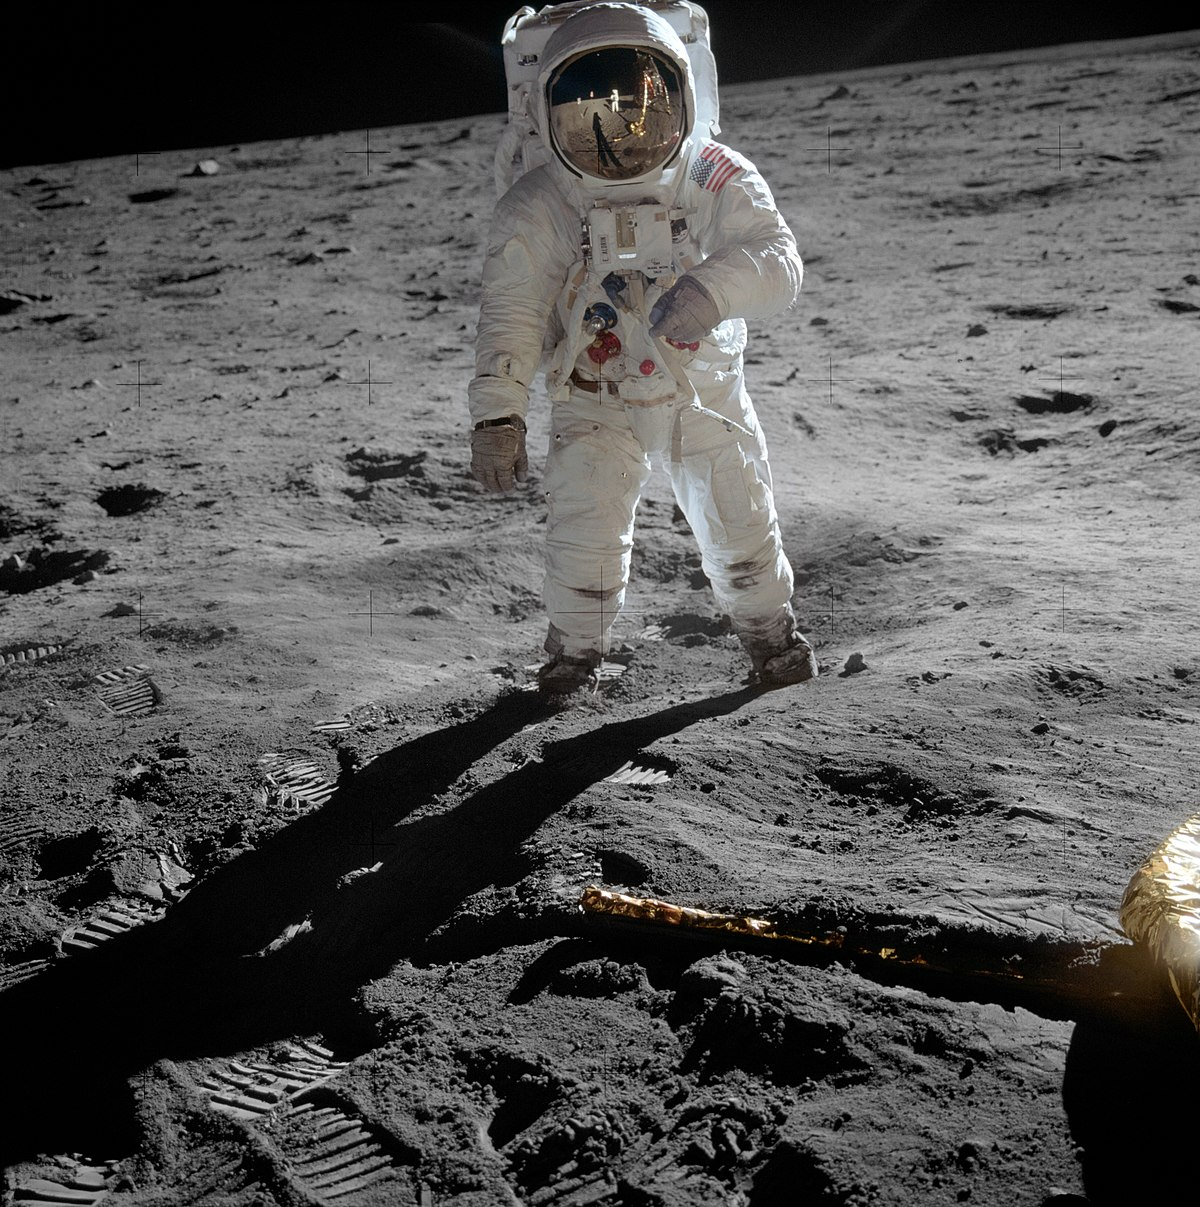 Apollo 11's achievement still dazzles